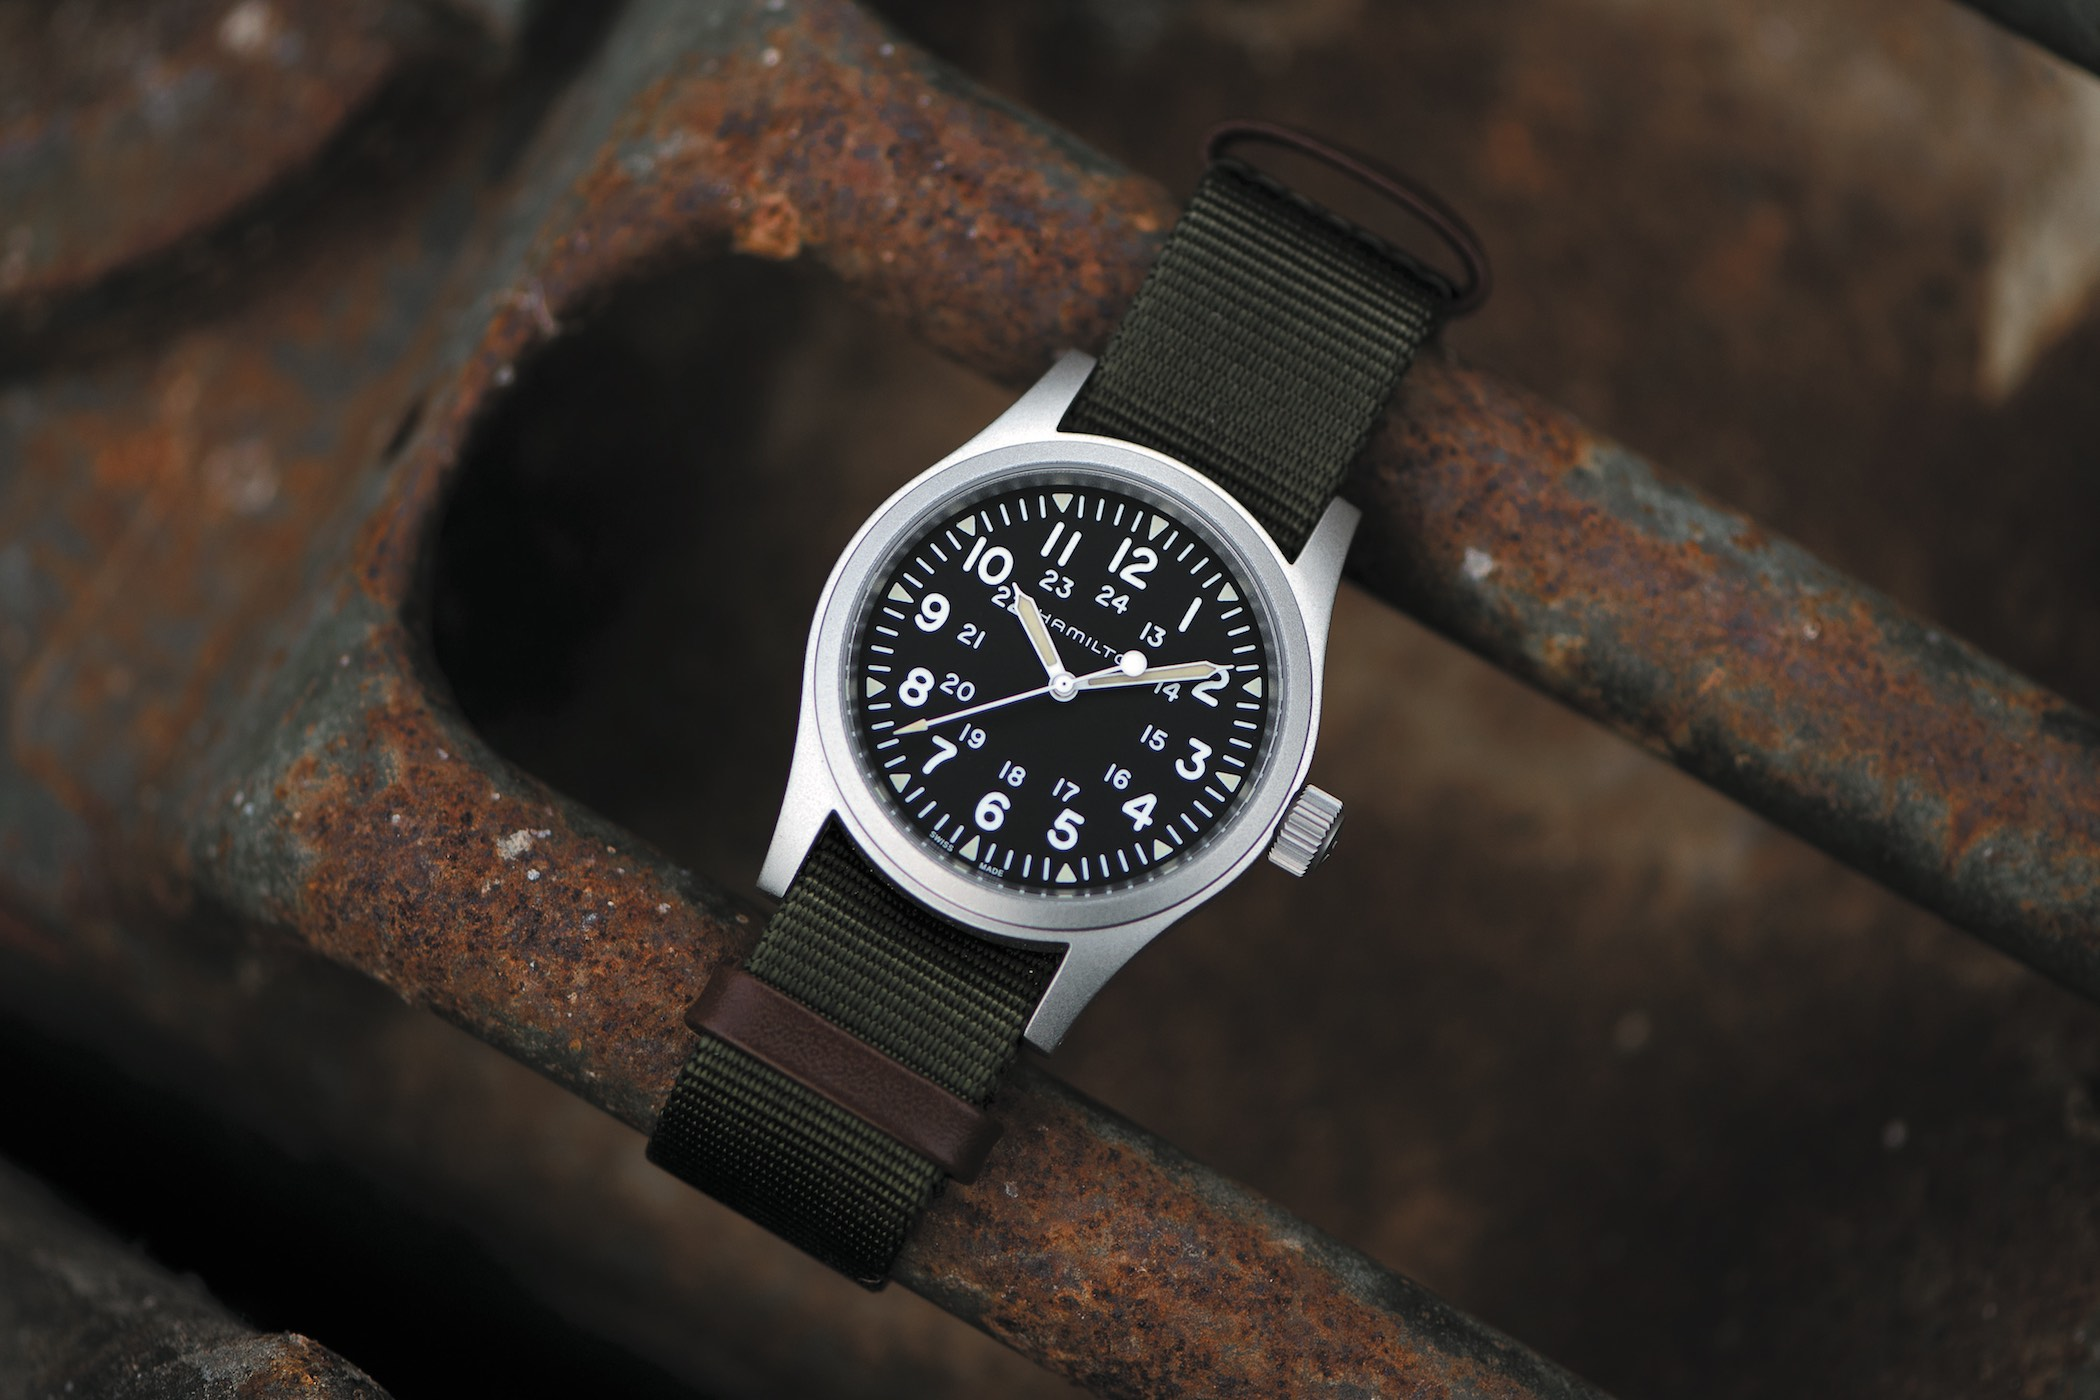 Buying Guide - 10 Best Watches of 2018 under 2000 euros - Monochrome-Watches